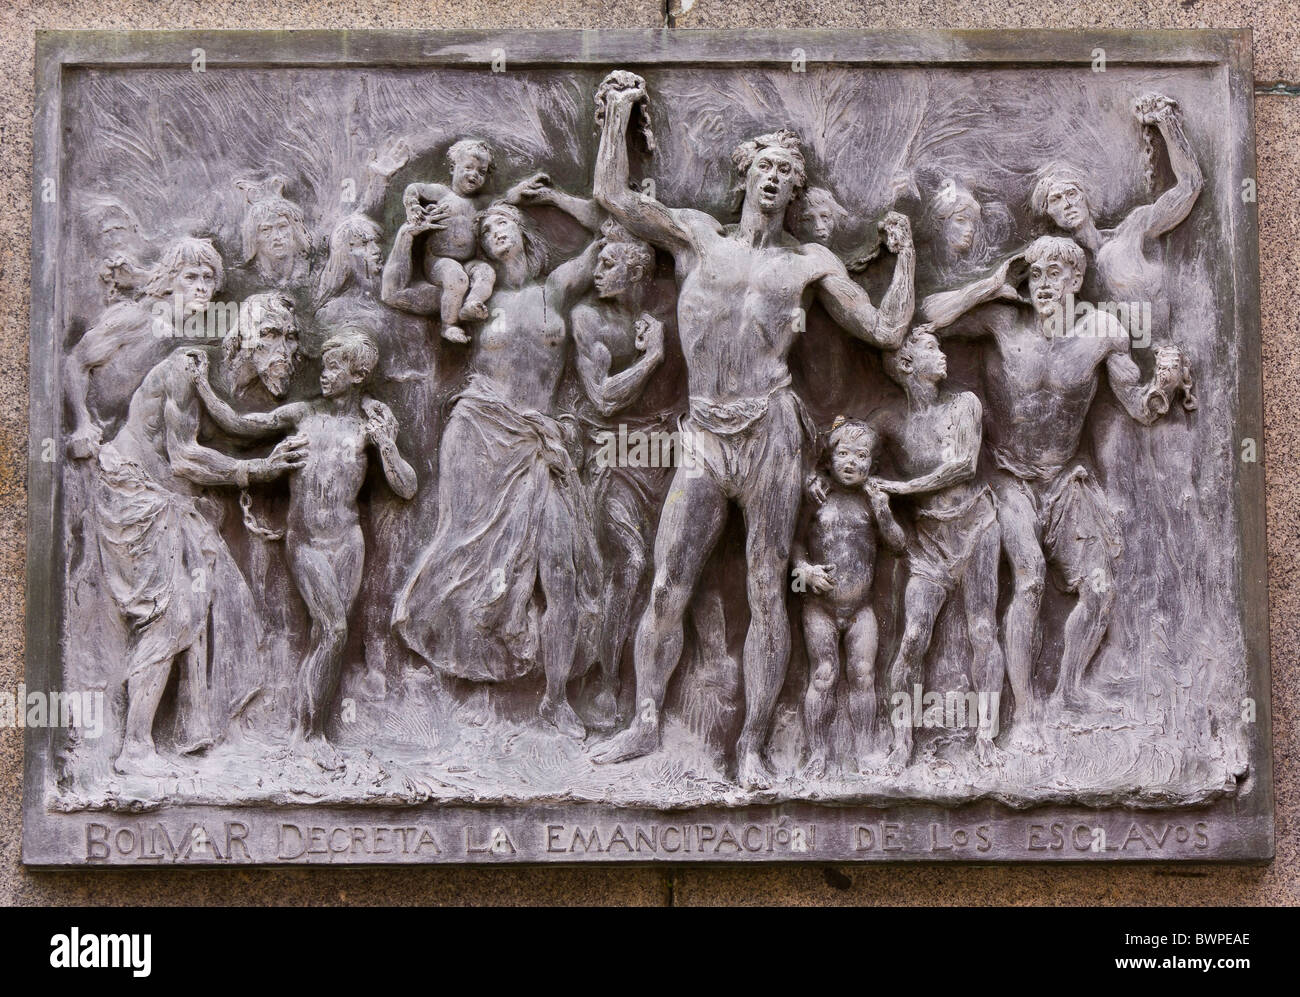 Relief Sculpture Stock Photos & Relief Sculpture Stock Images - Alamy